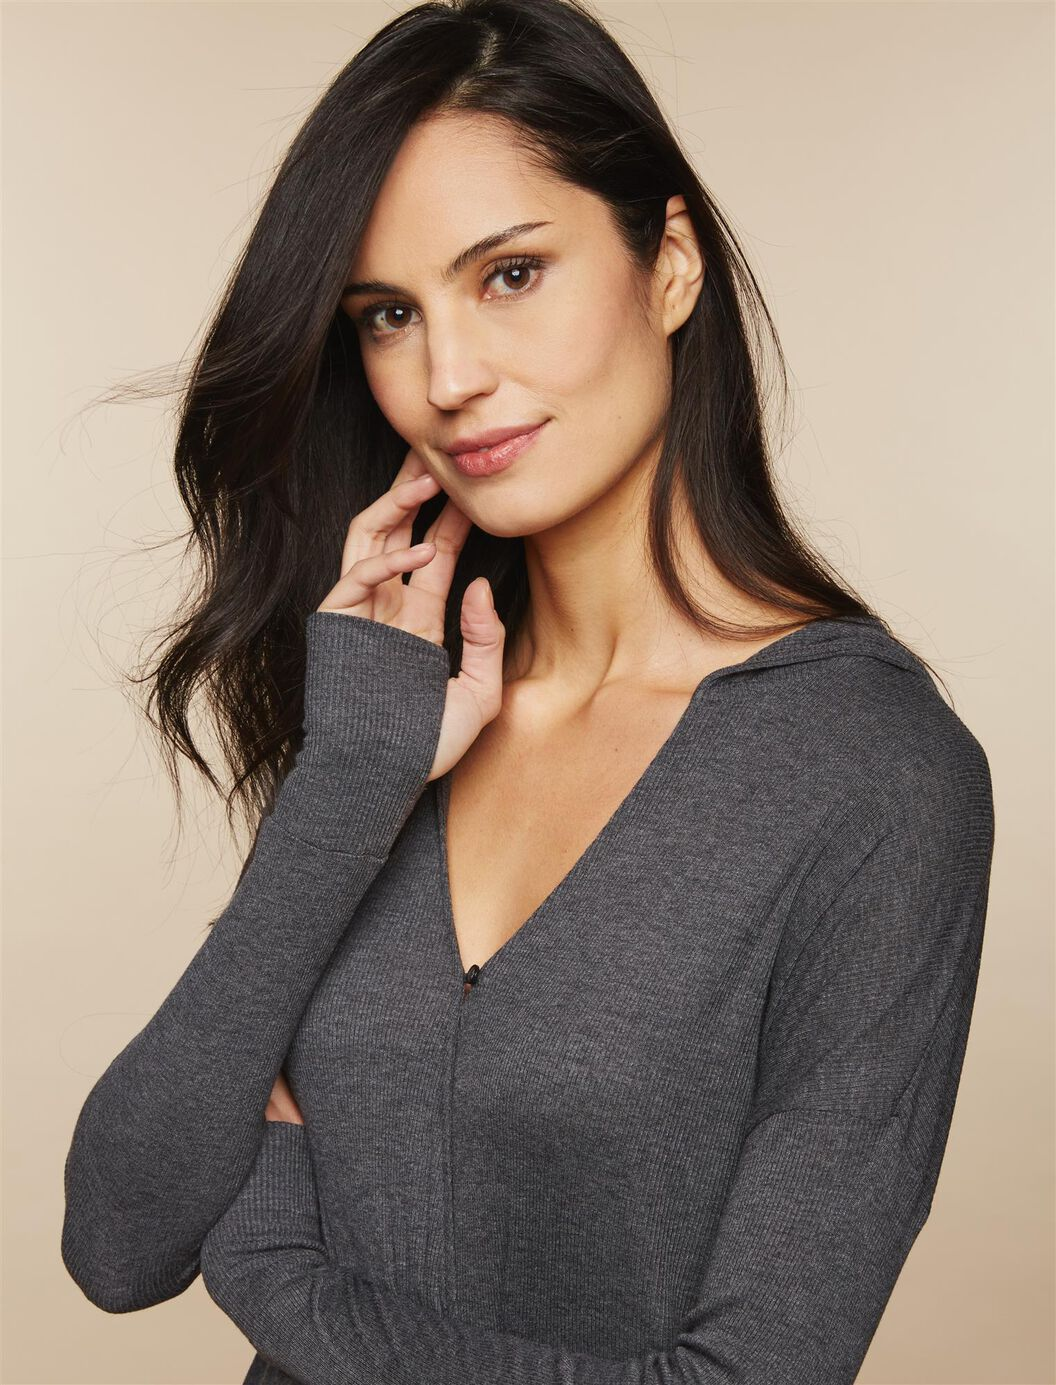 Hooded Nursing Wrap Top at Motherhood Maternity in Victor, NY   Tuggl